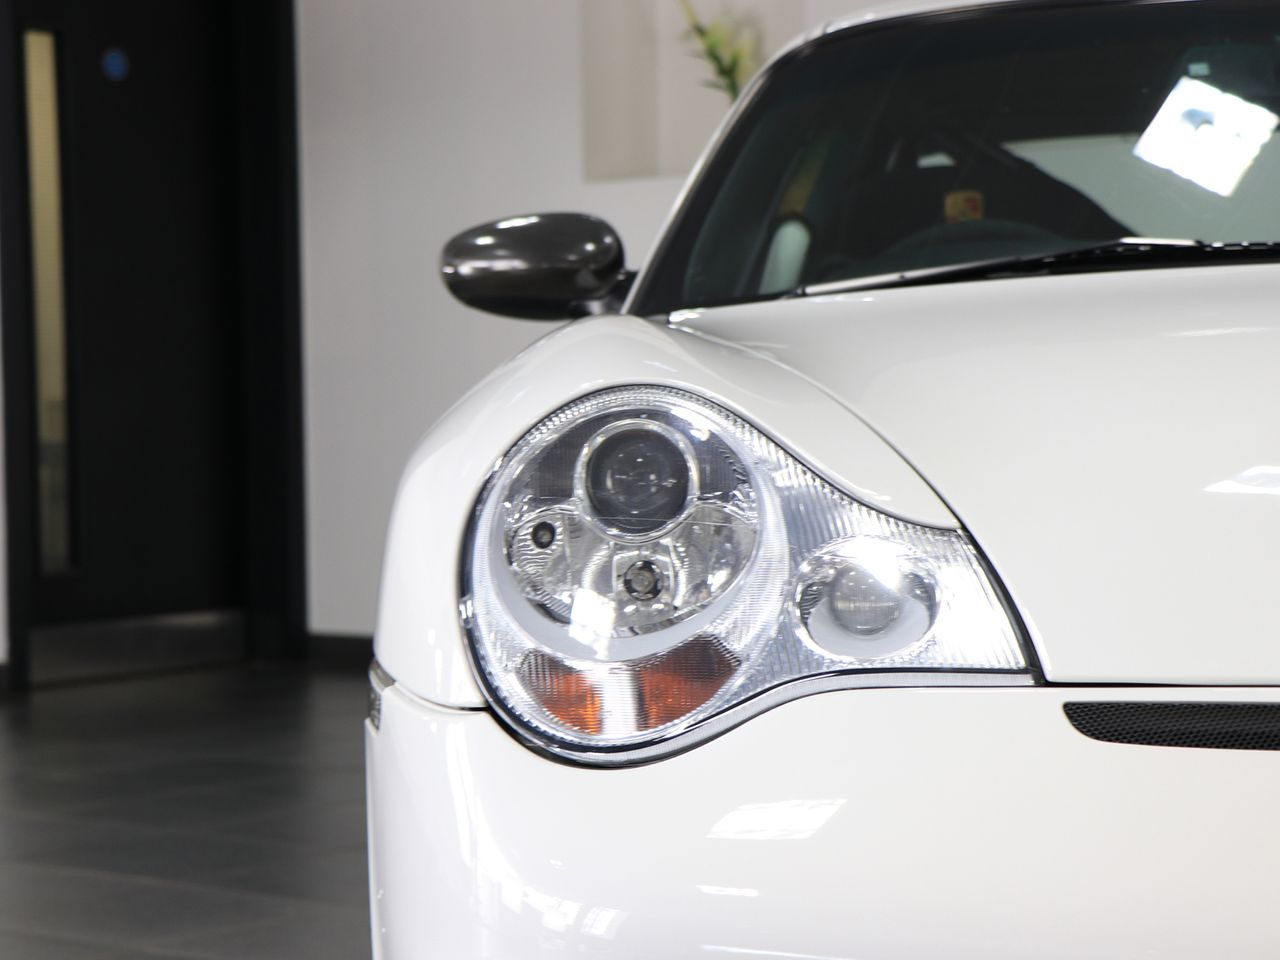 911 (996) GT3 RS image 39